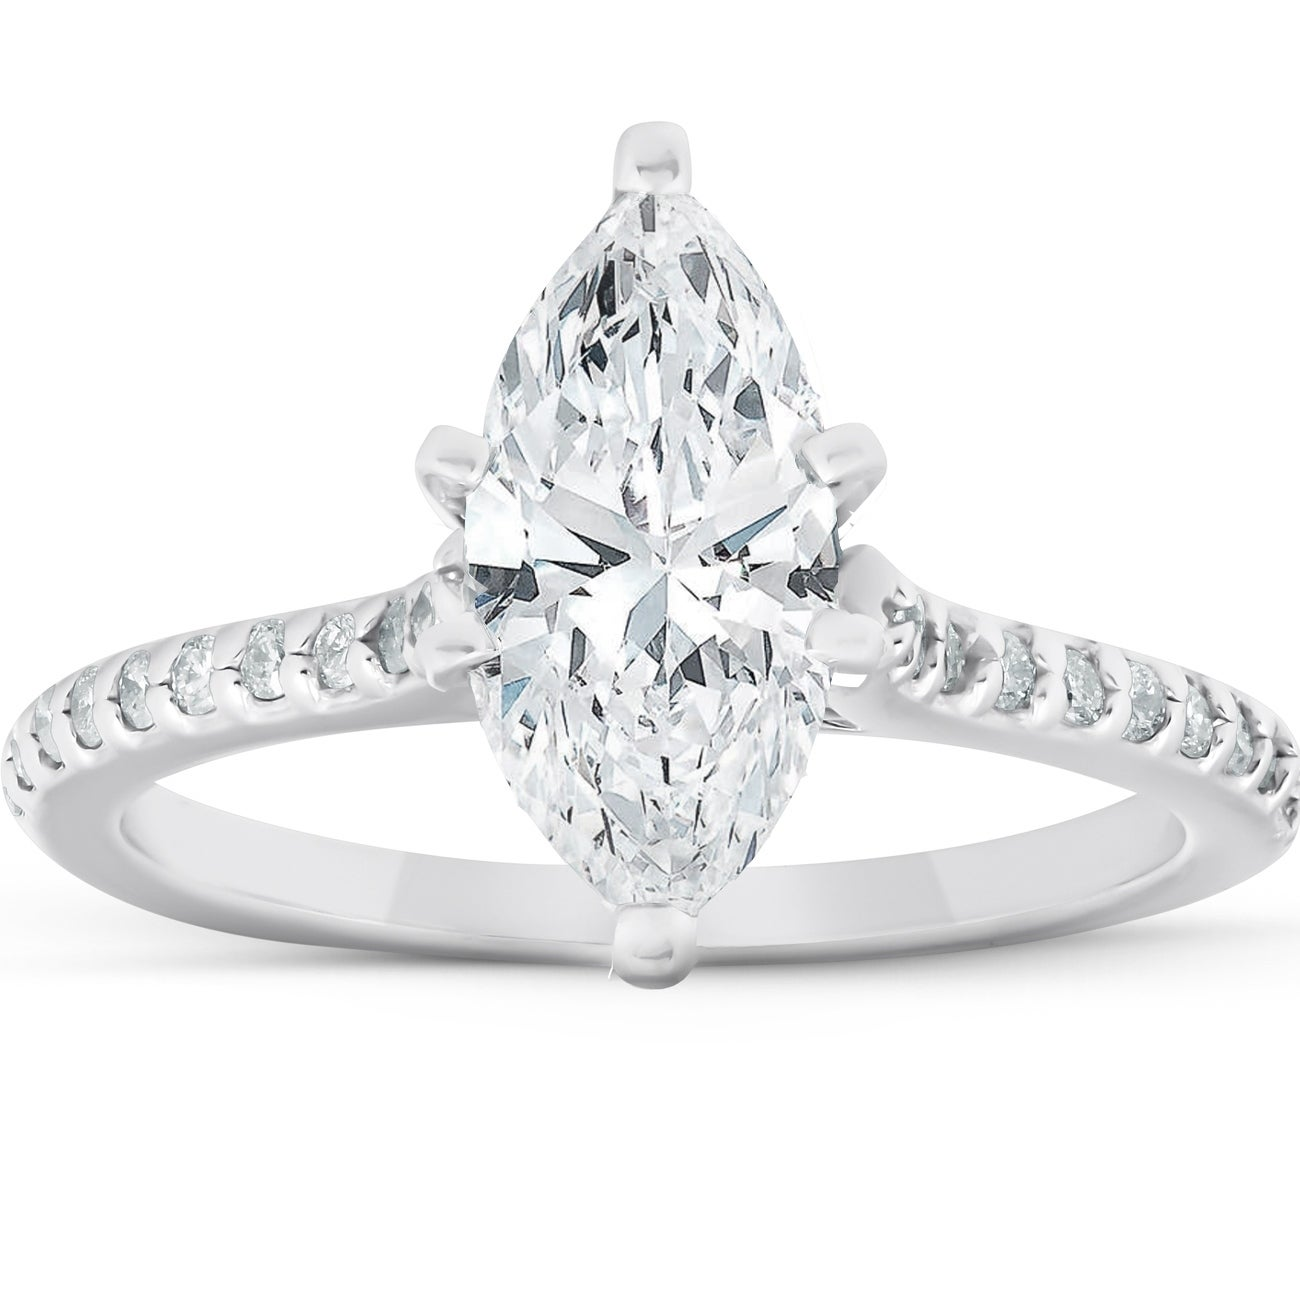 Shop 2 Ct Marquise Diamond Engagement Ring 14k White Gold Size 6 5 On Sale Overstock 28988138